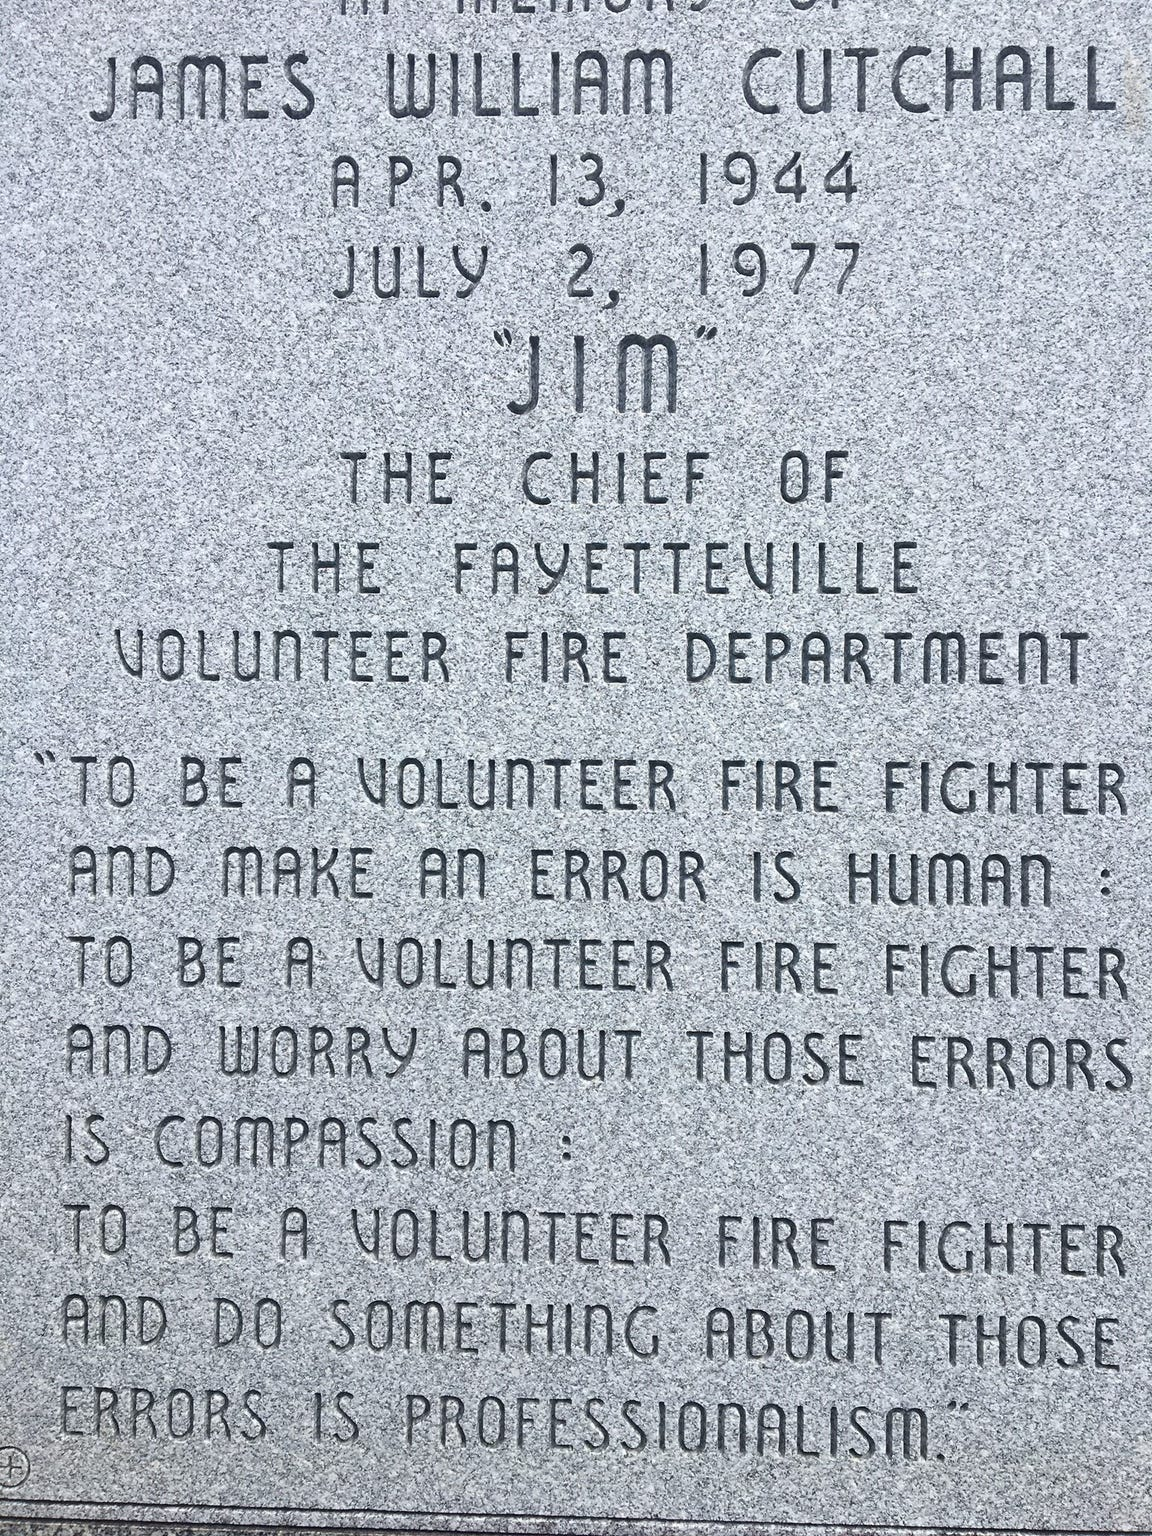 Jim Cutchall's gravestone is inscribed with one of his thoughts about volunteer firefighting.